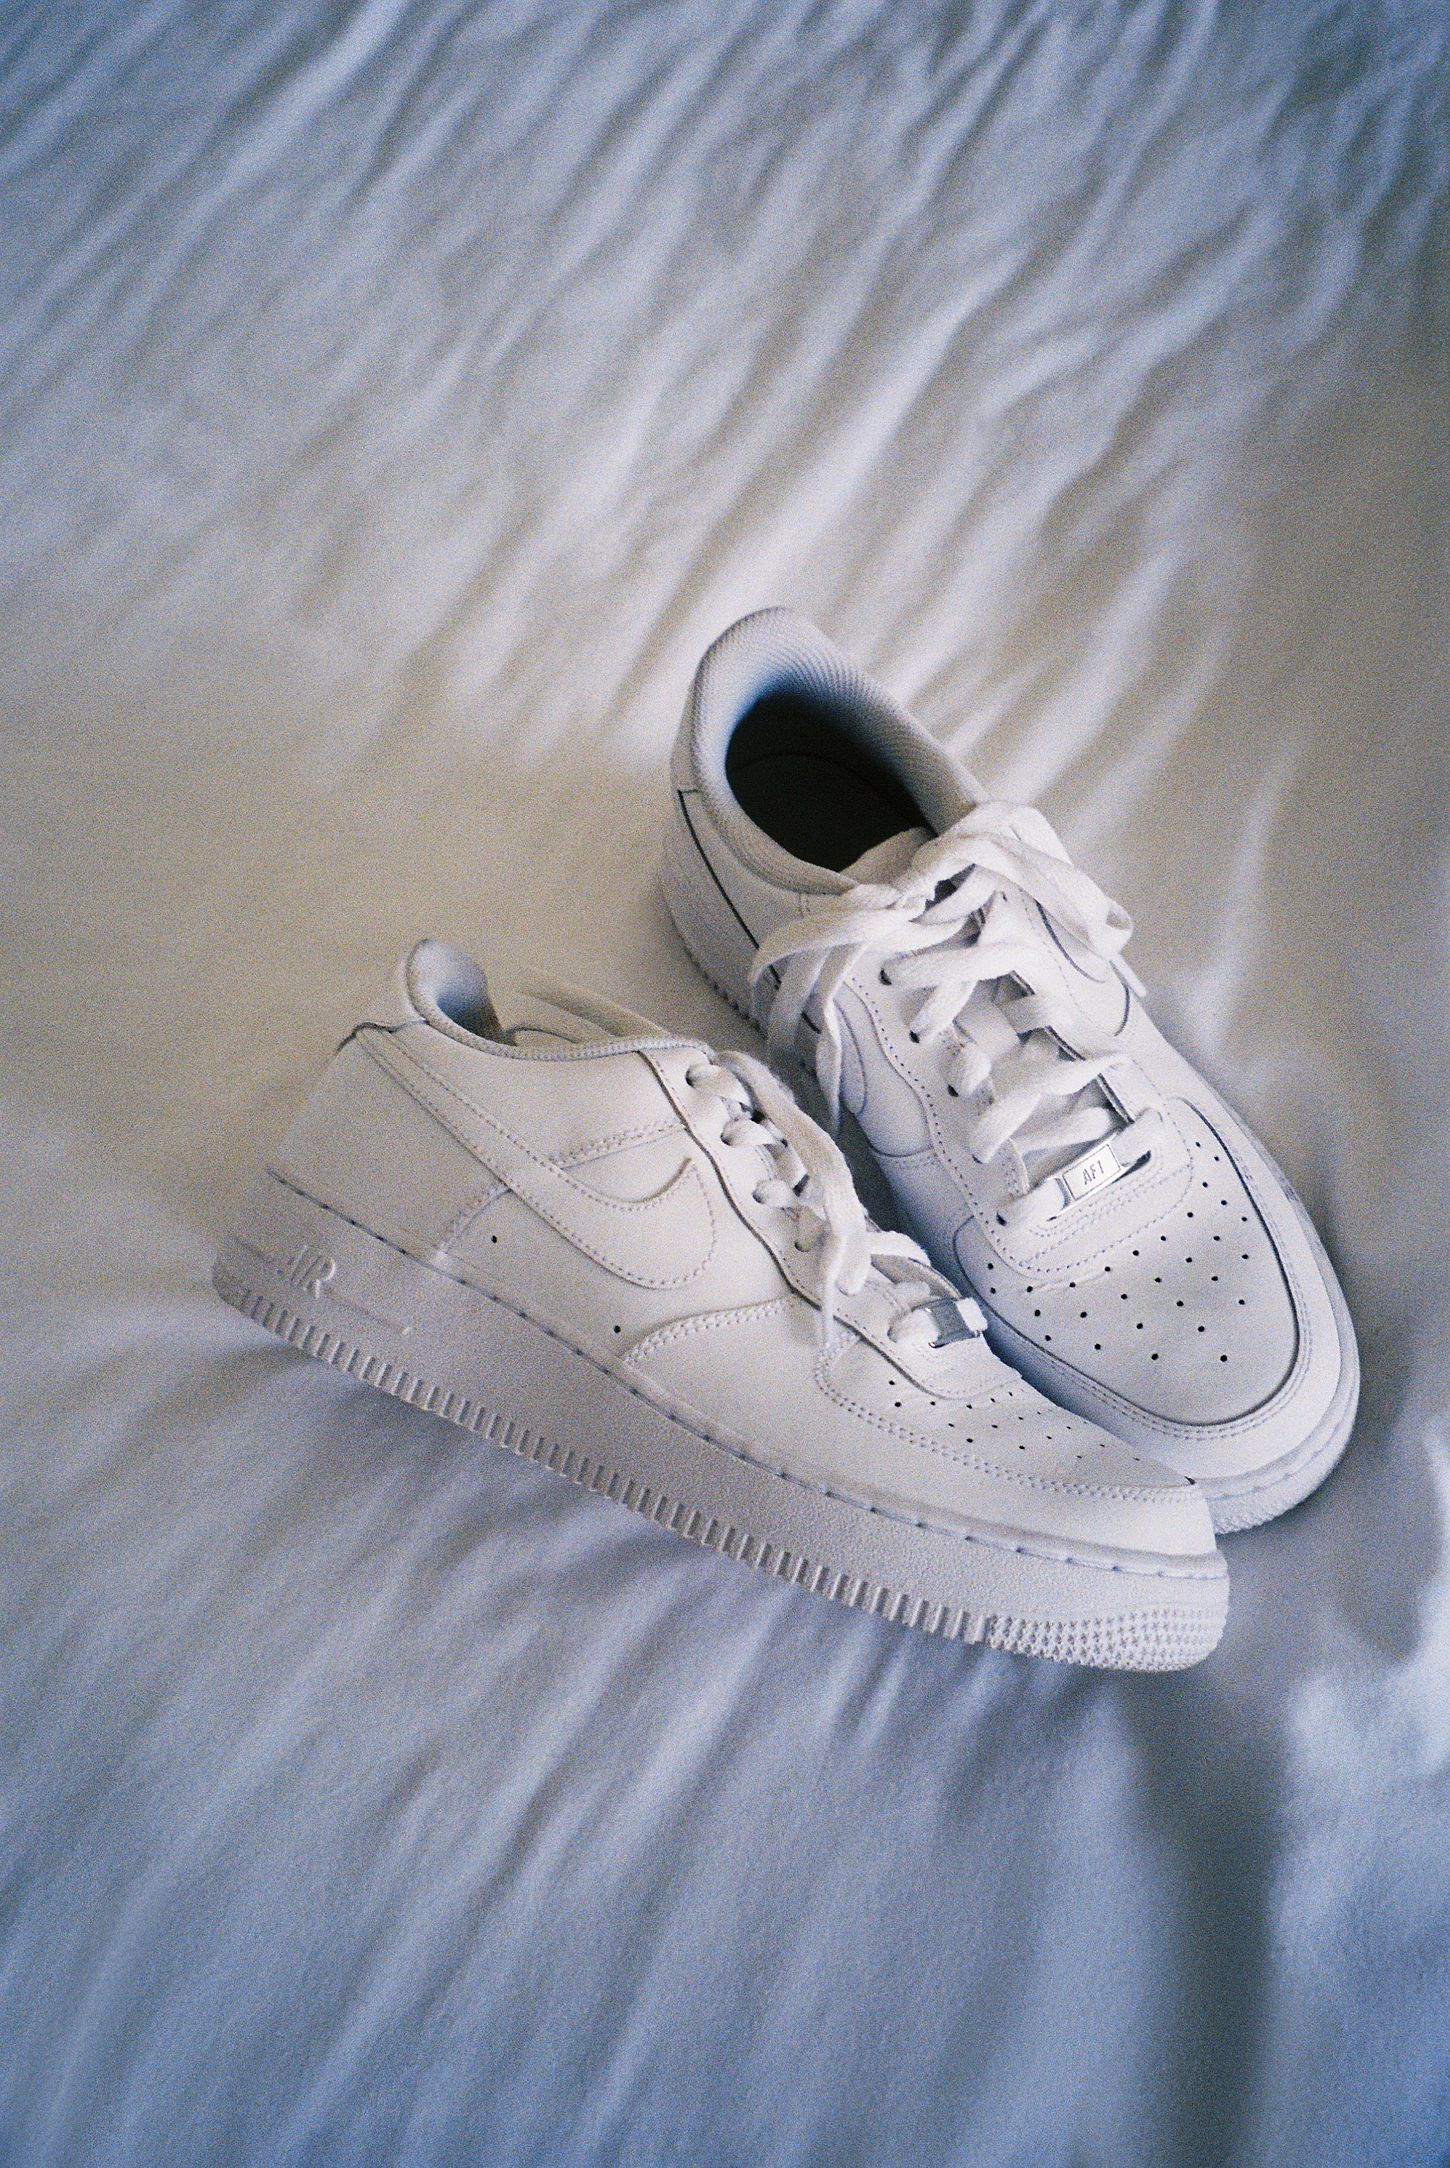 5a69d783423 Nike Air Force 1 '07 Sneaker